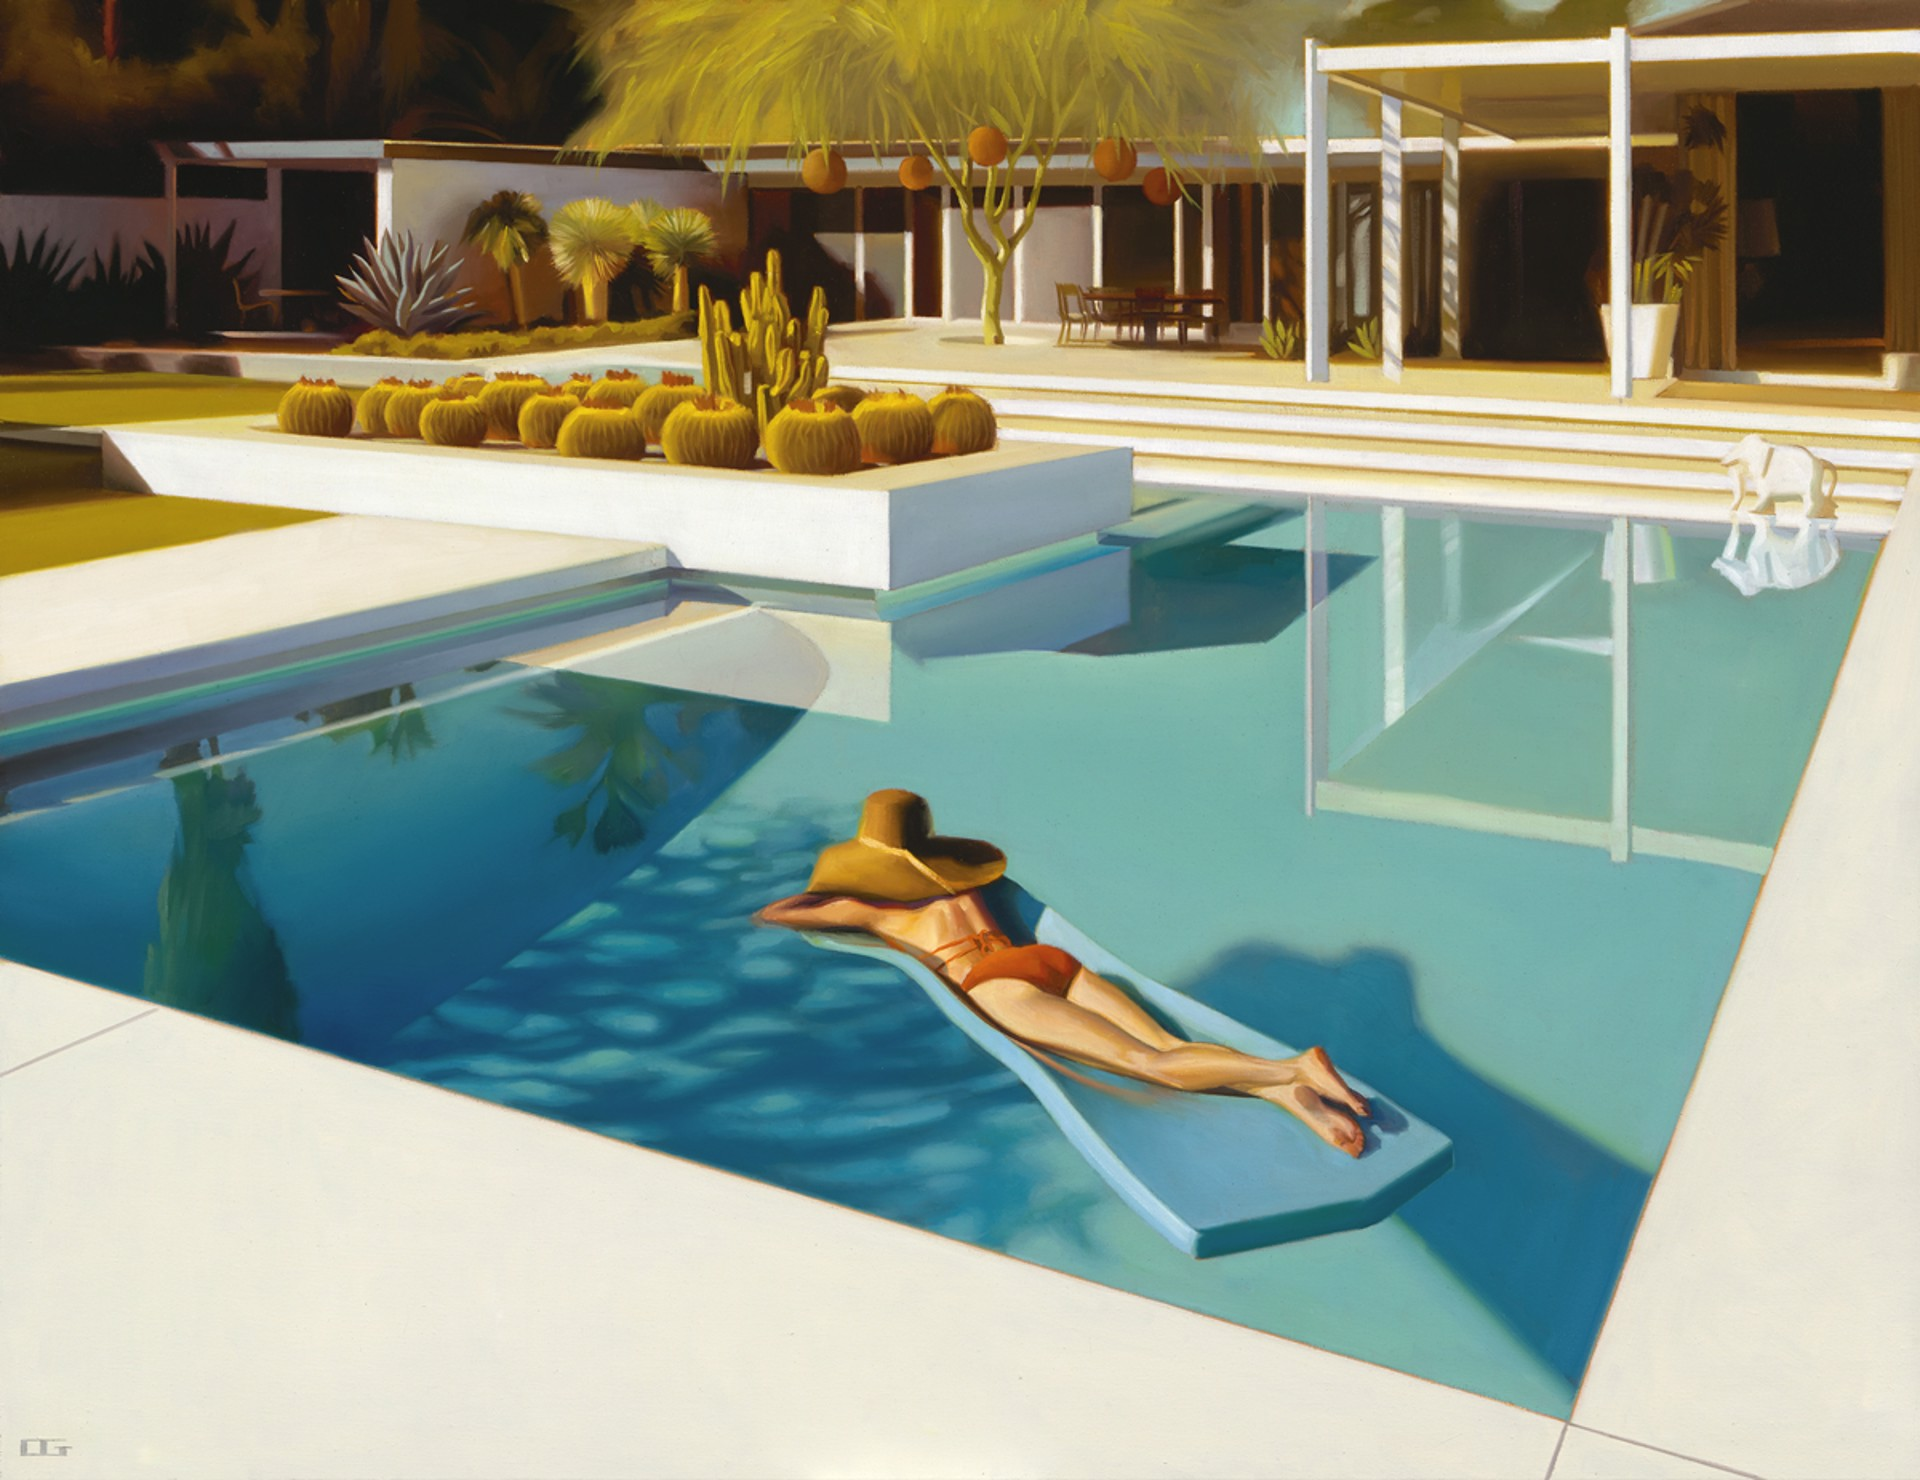 Me Time by Carrie Graber